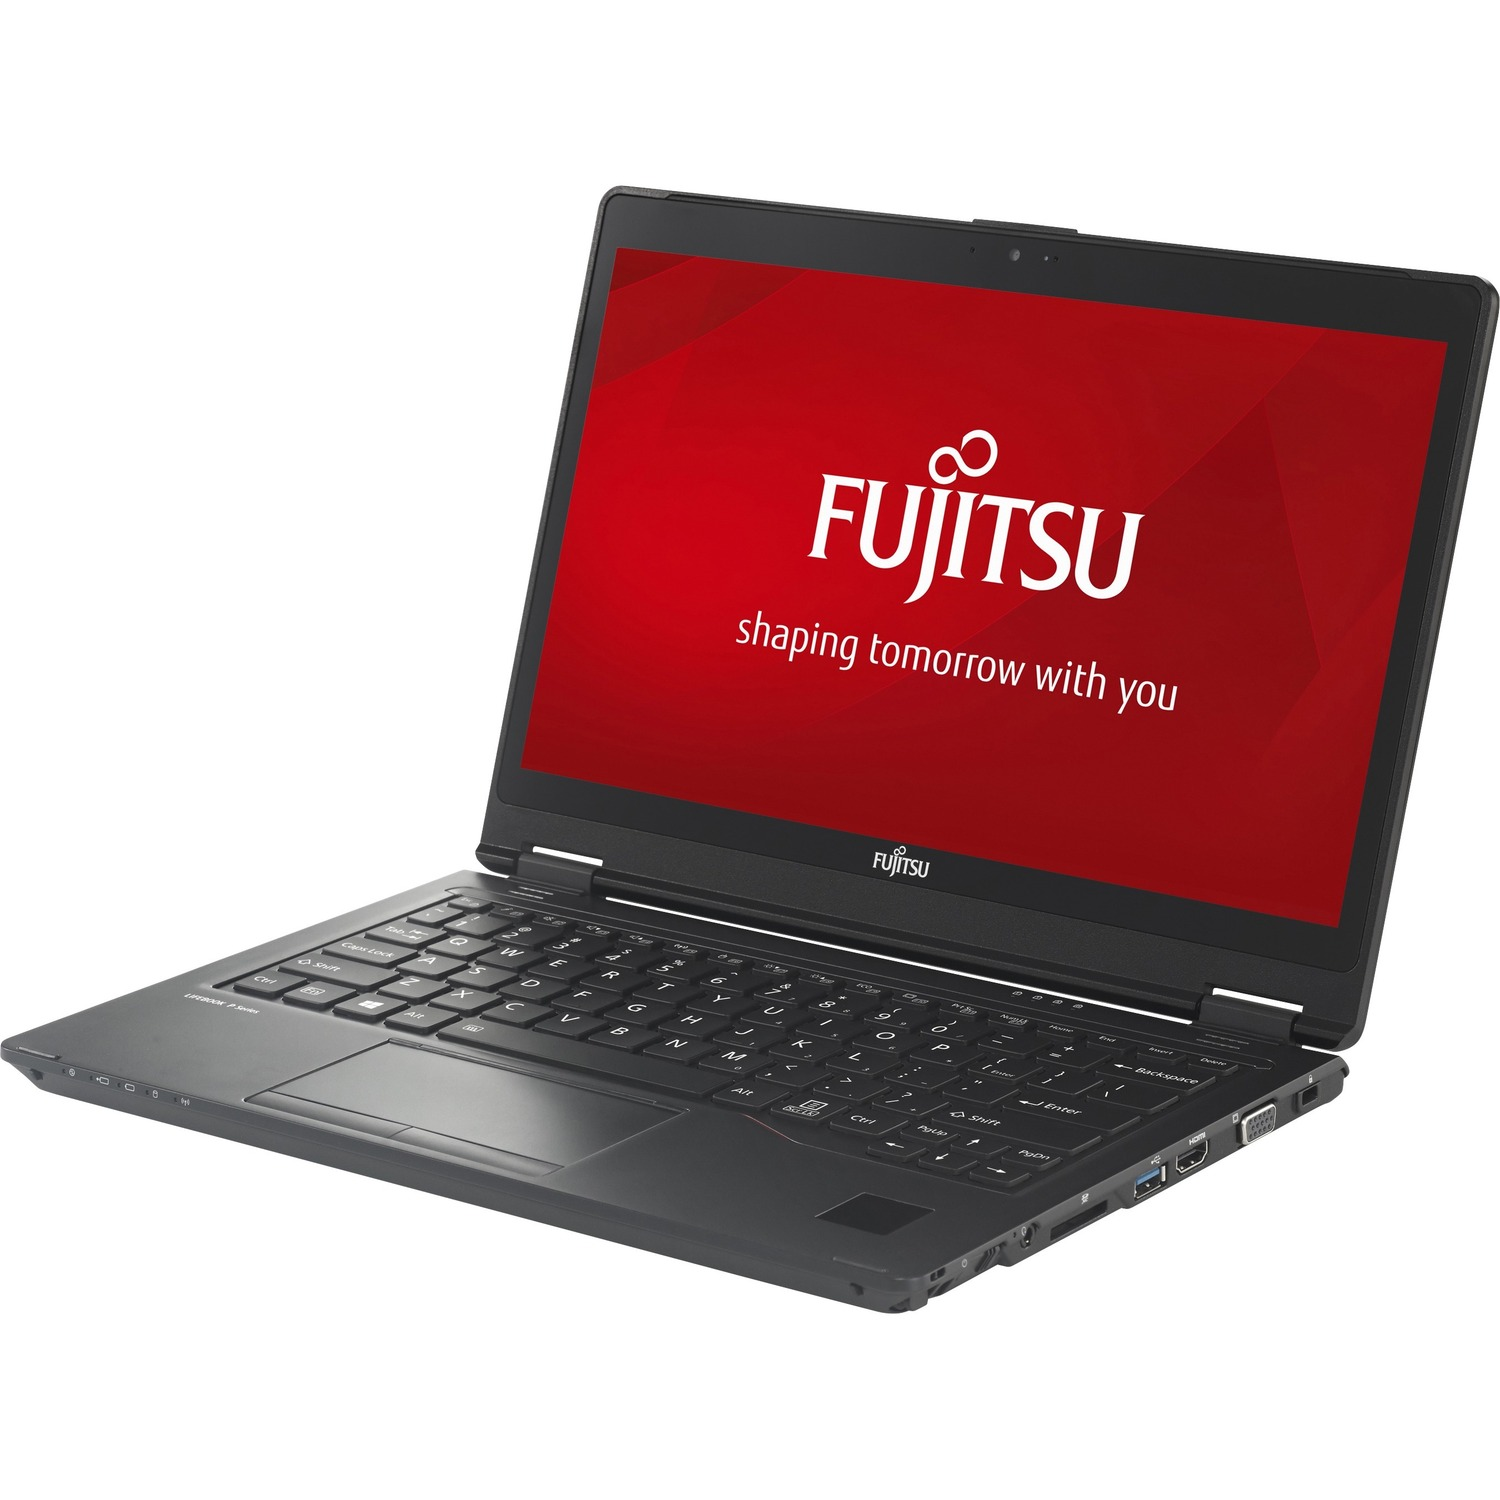 Fujitsu LIFEBOOK P727 31.8 cm 12.5inch Touchscreen LCD 2 in 1 Notebook - Intel Core i7 7th Gen i7-7600U Dual-core 2 Core 2.80 GHz - 8 GB DDR4 SDRAM - 256 GB SSD -